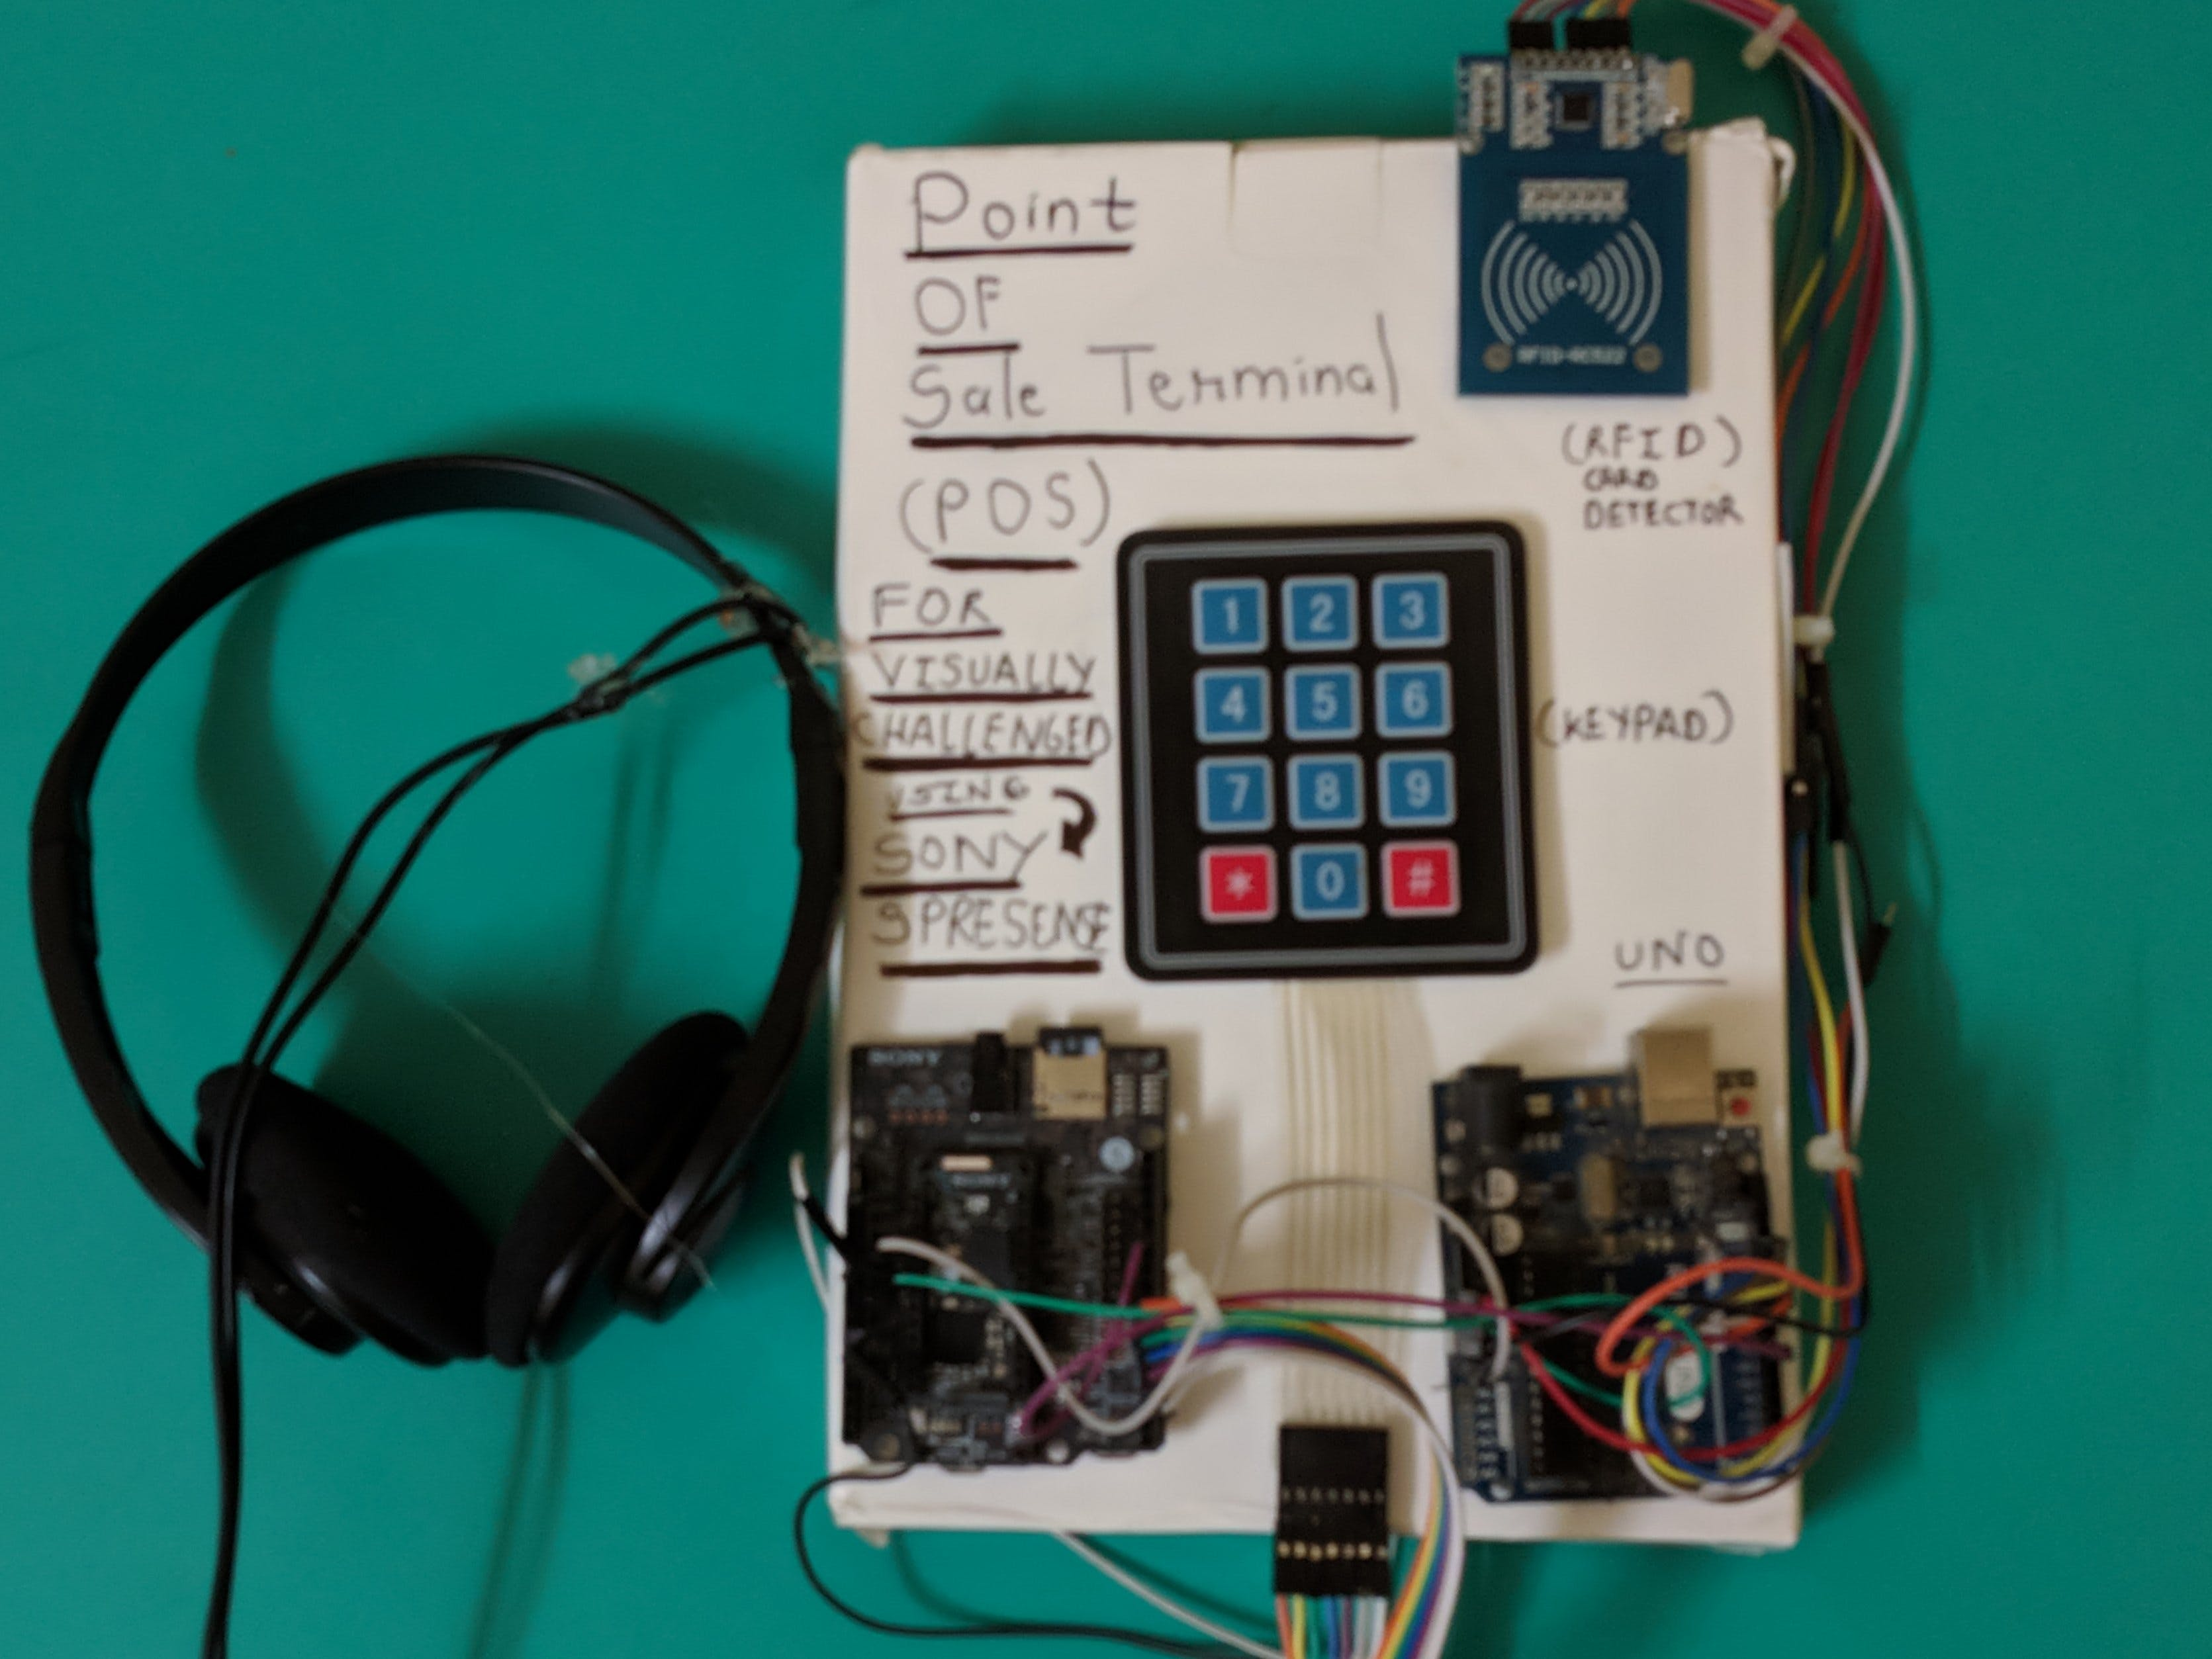 Payment Terminal for the Visually Challenged